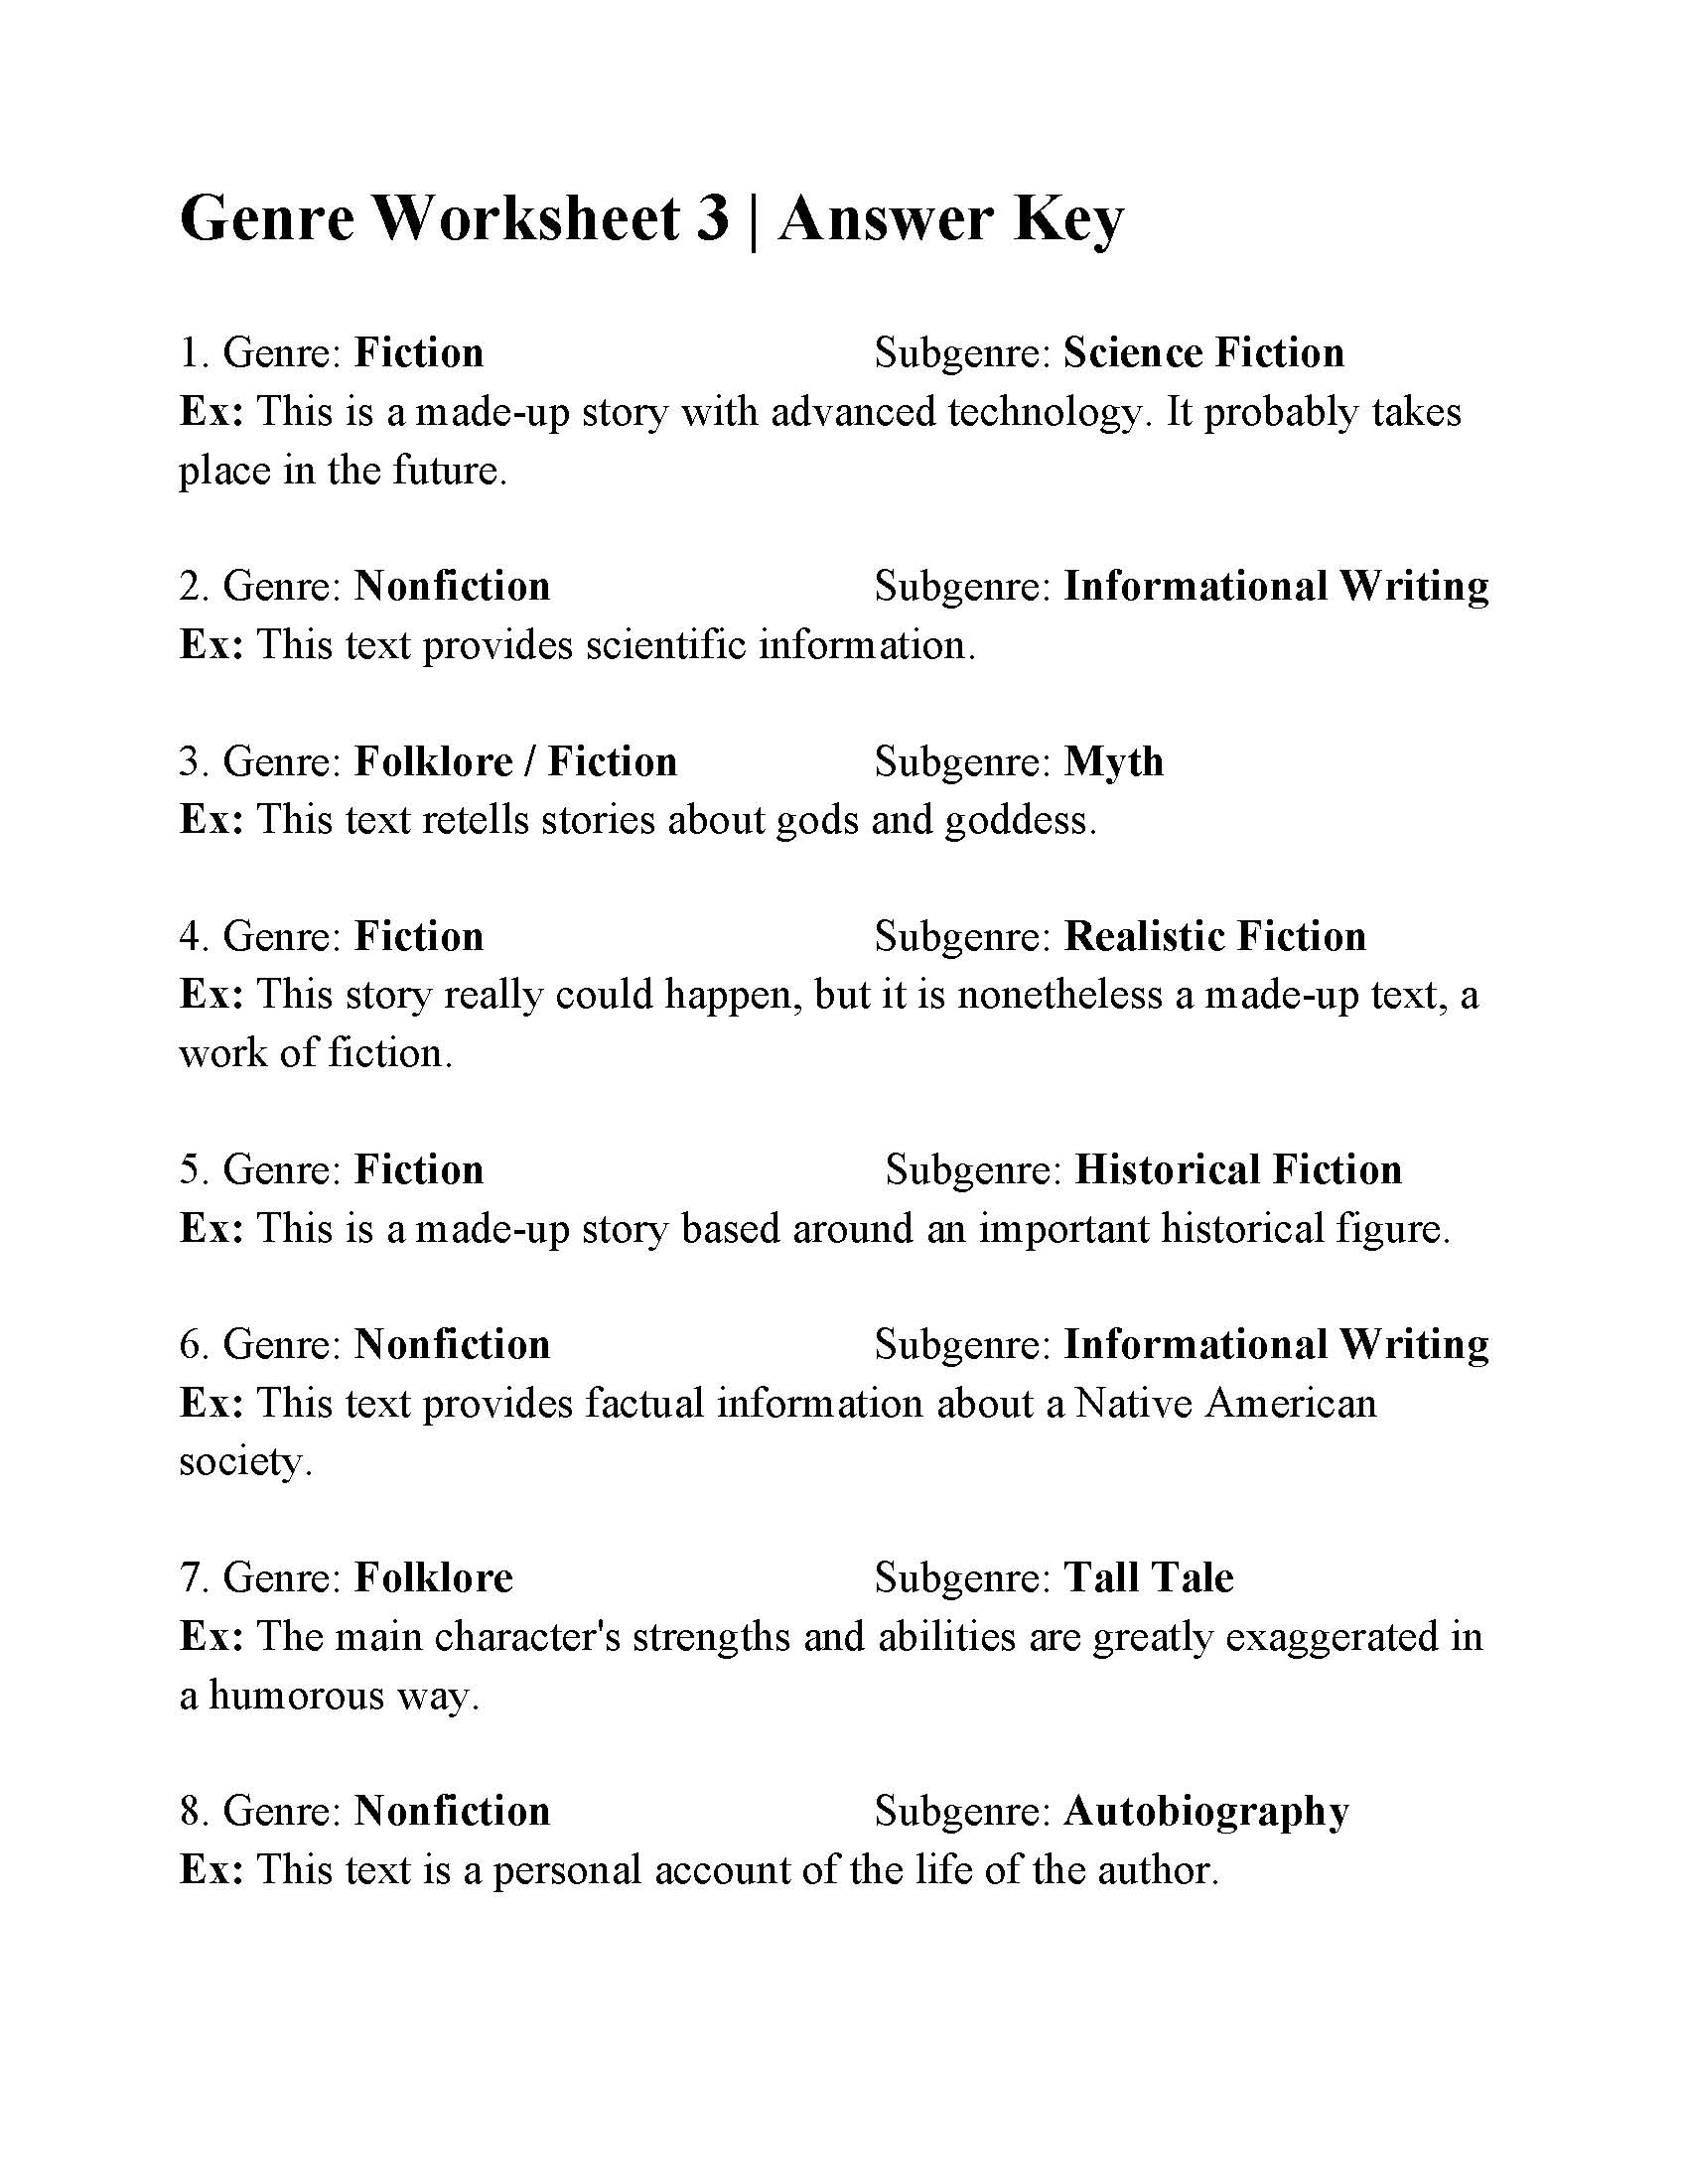 Genre Worksheet 3